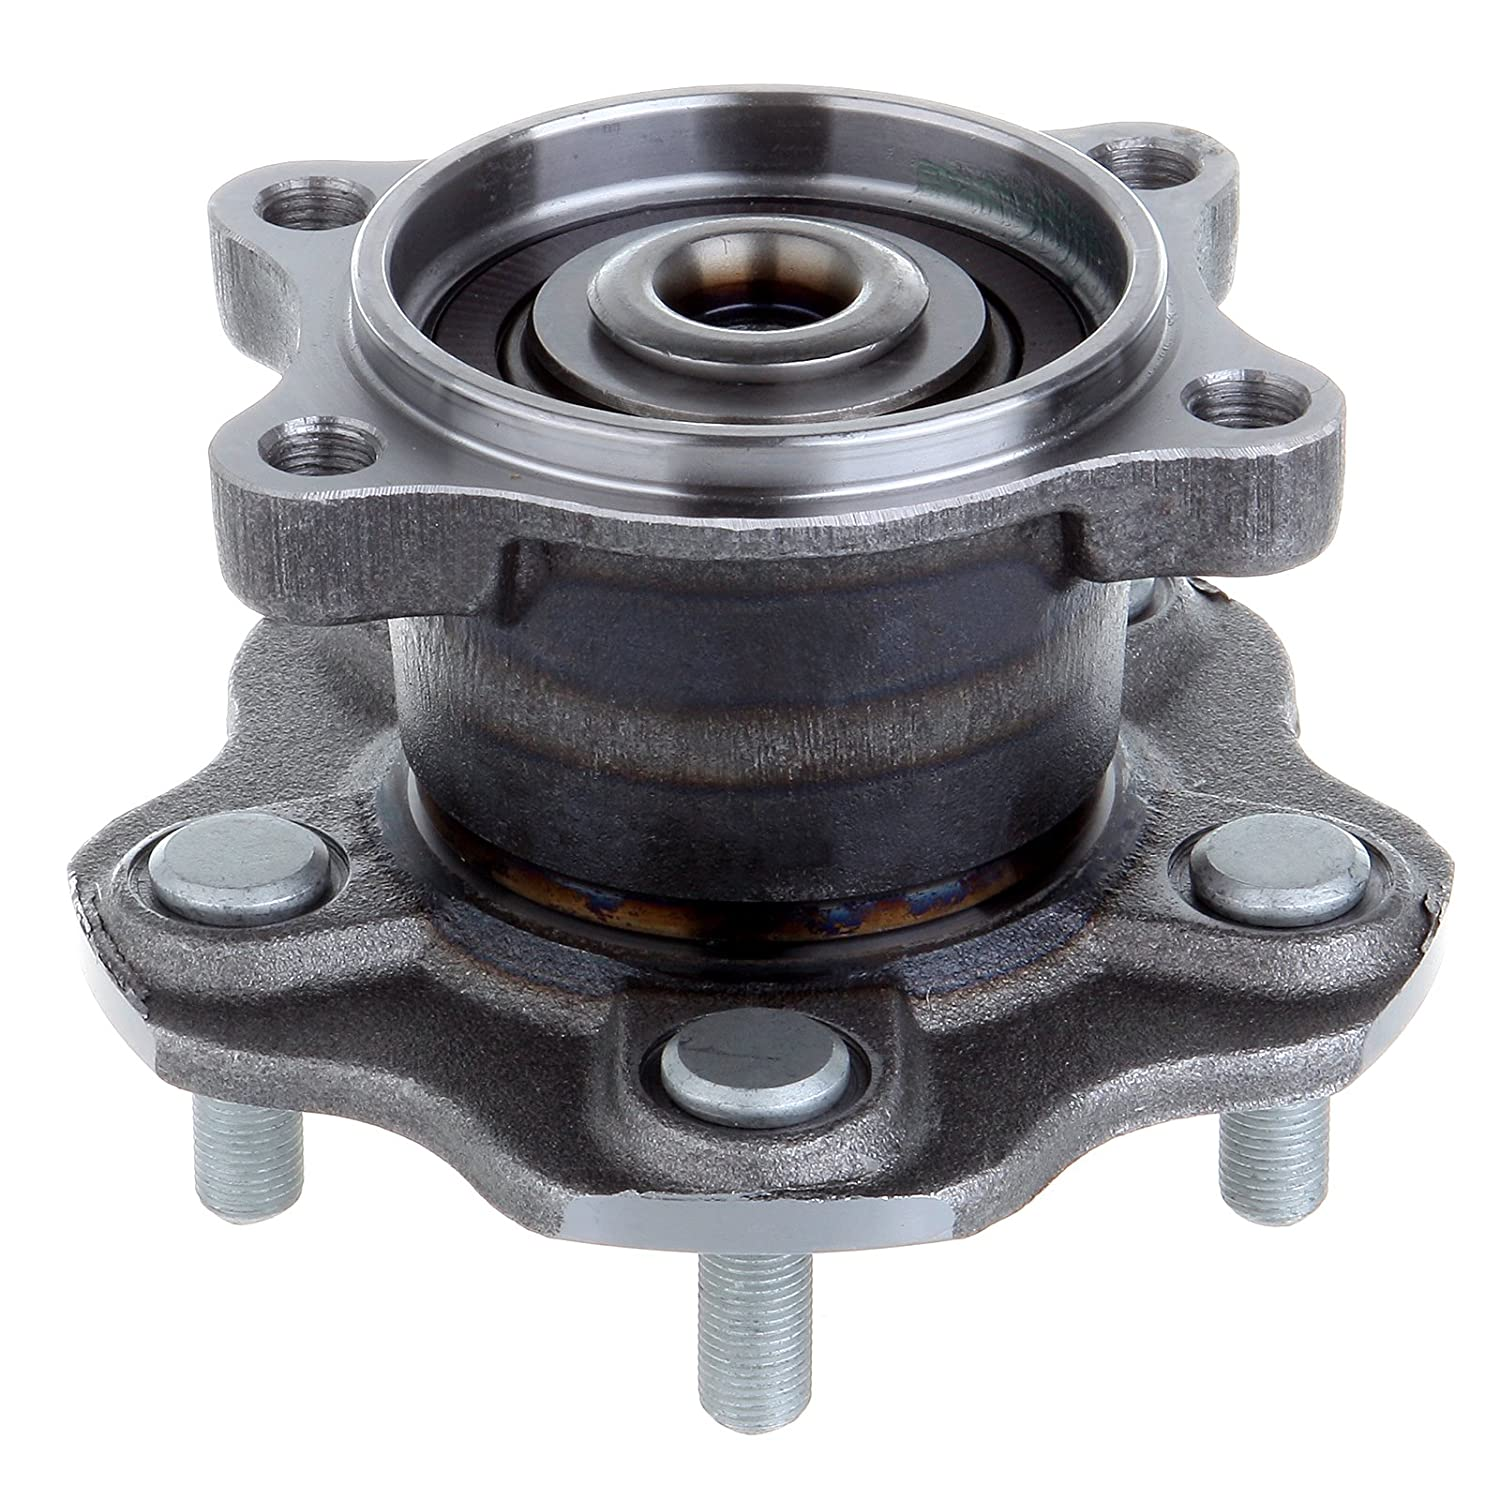 ECCPP Wheel Hub and Bearing Assembly Rear 512201 fit 2002-2006 Nissan Altima Quest Maxima Replacement for 5 Lugs Wheel Hub with ABS 4 Bolt Flange